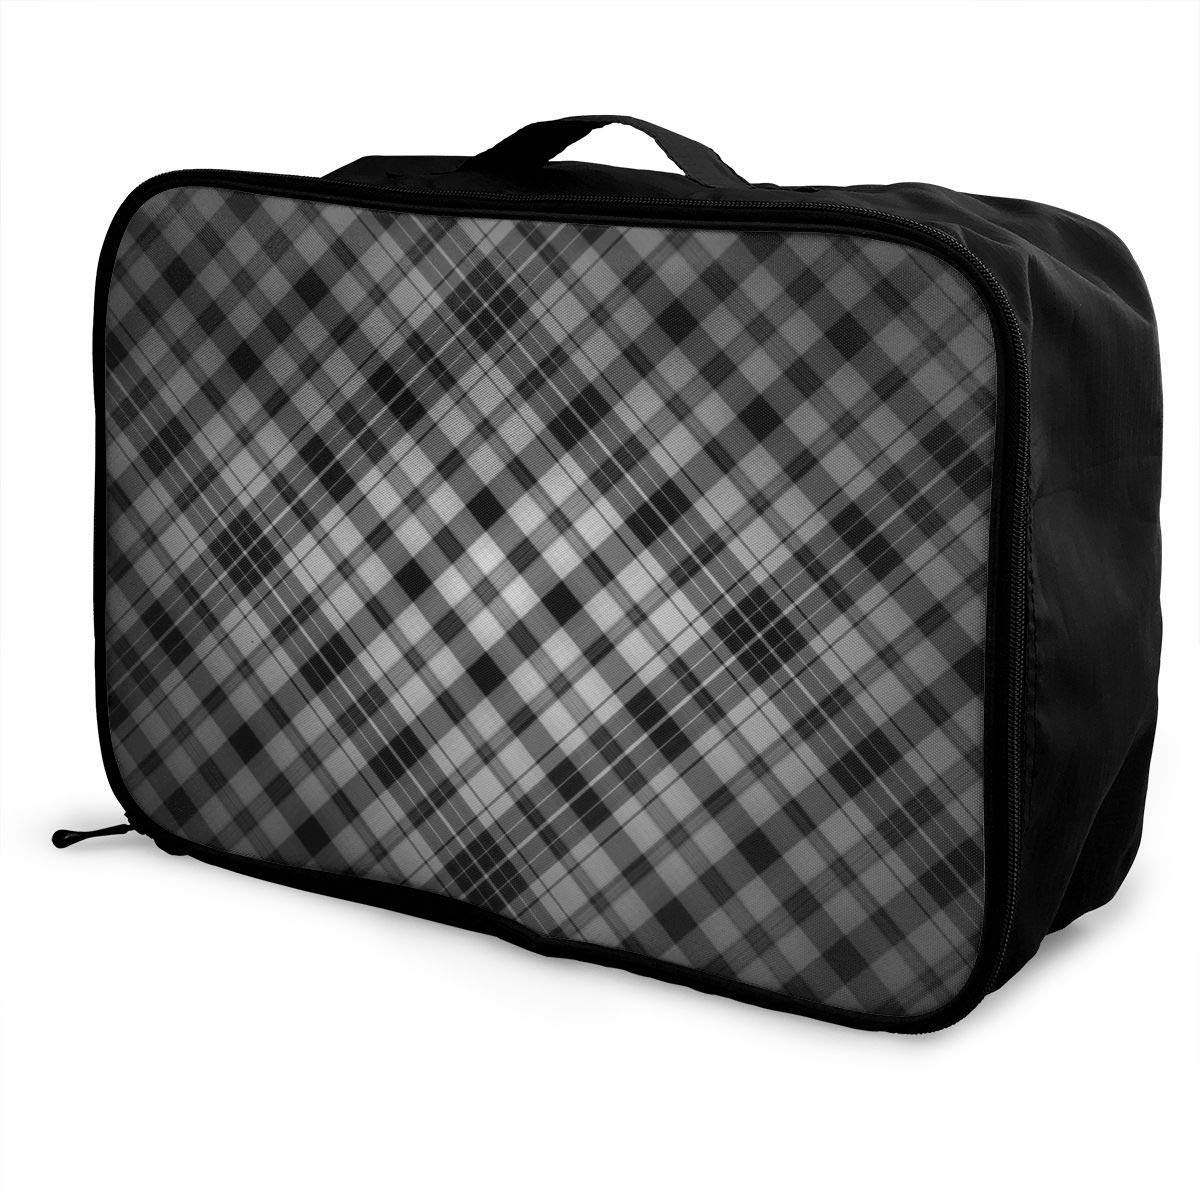 ADGAI Black and White Gingham Canvas Travel Weekender Bag,Fashion Custom Lightweight Large Capacity Portable Luggage Bag,Suitcase Trolley Bag